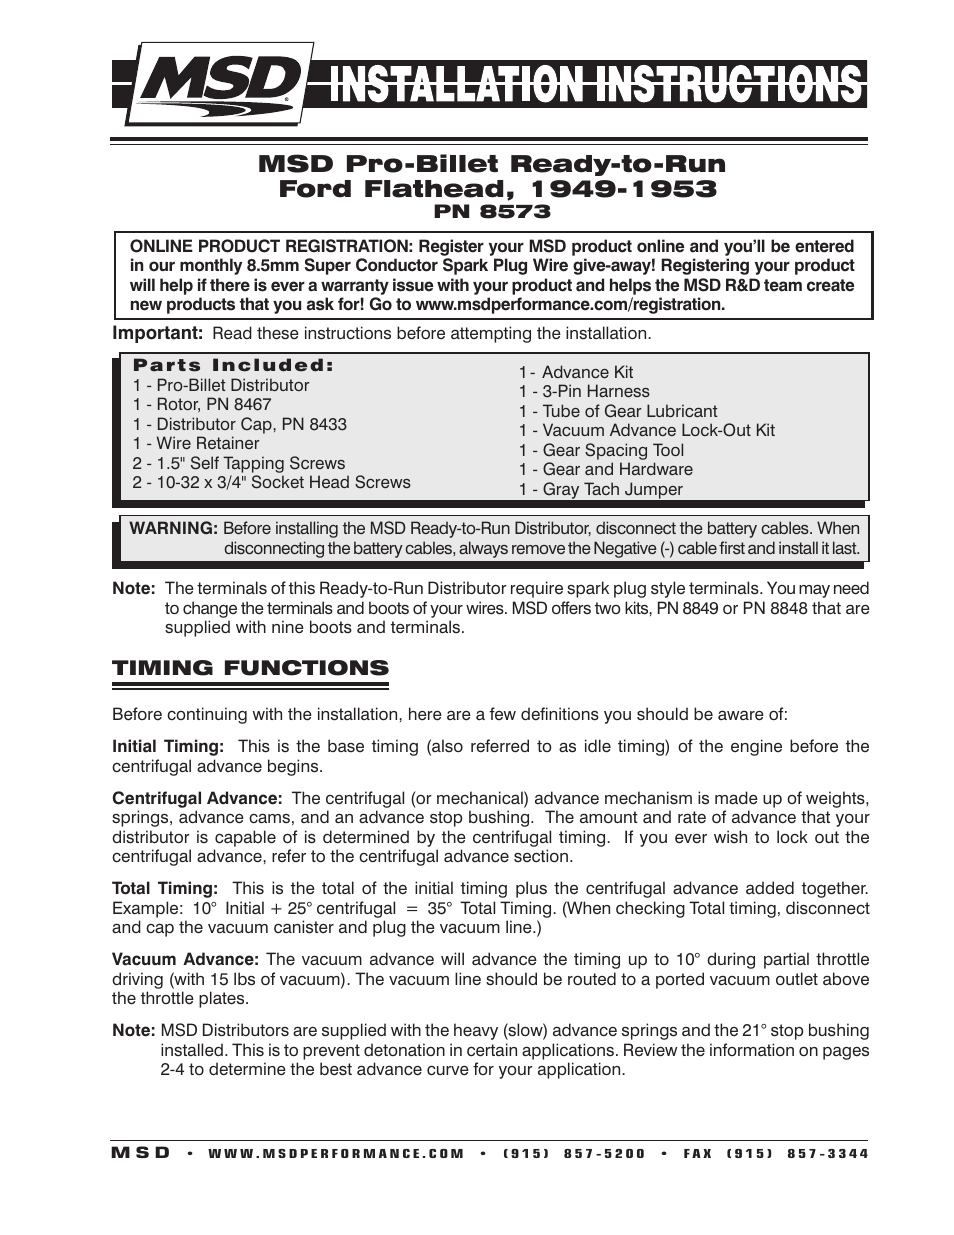 medium resolution of msd 8573 flathead ford ready to run distributor for 49 53 installation user manual 8 pages